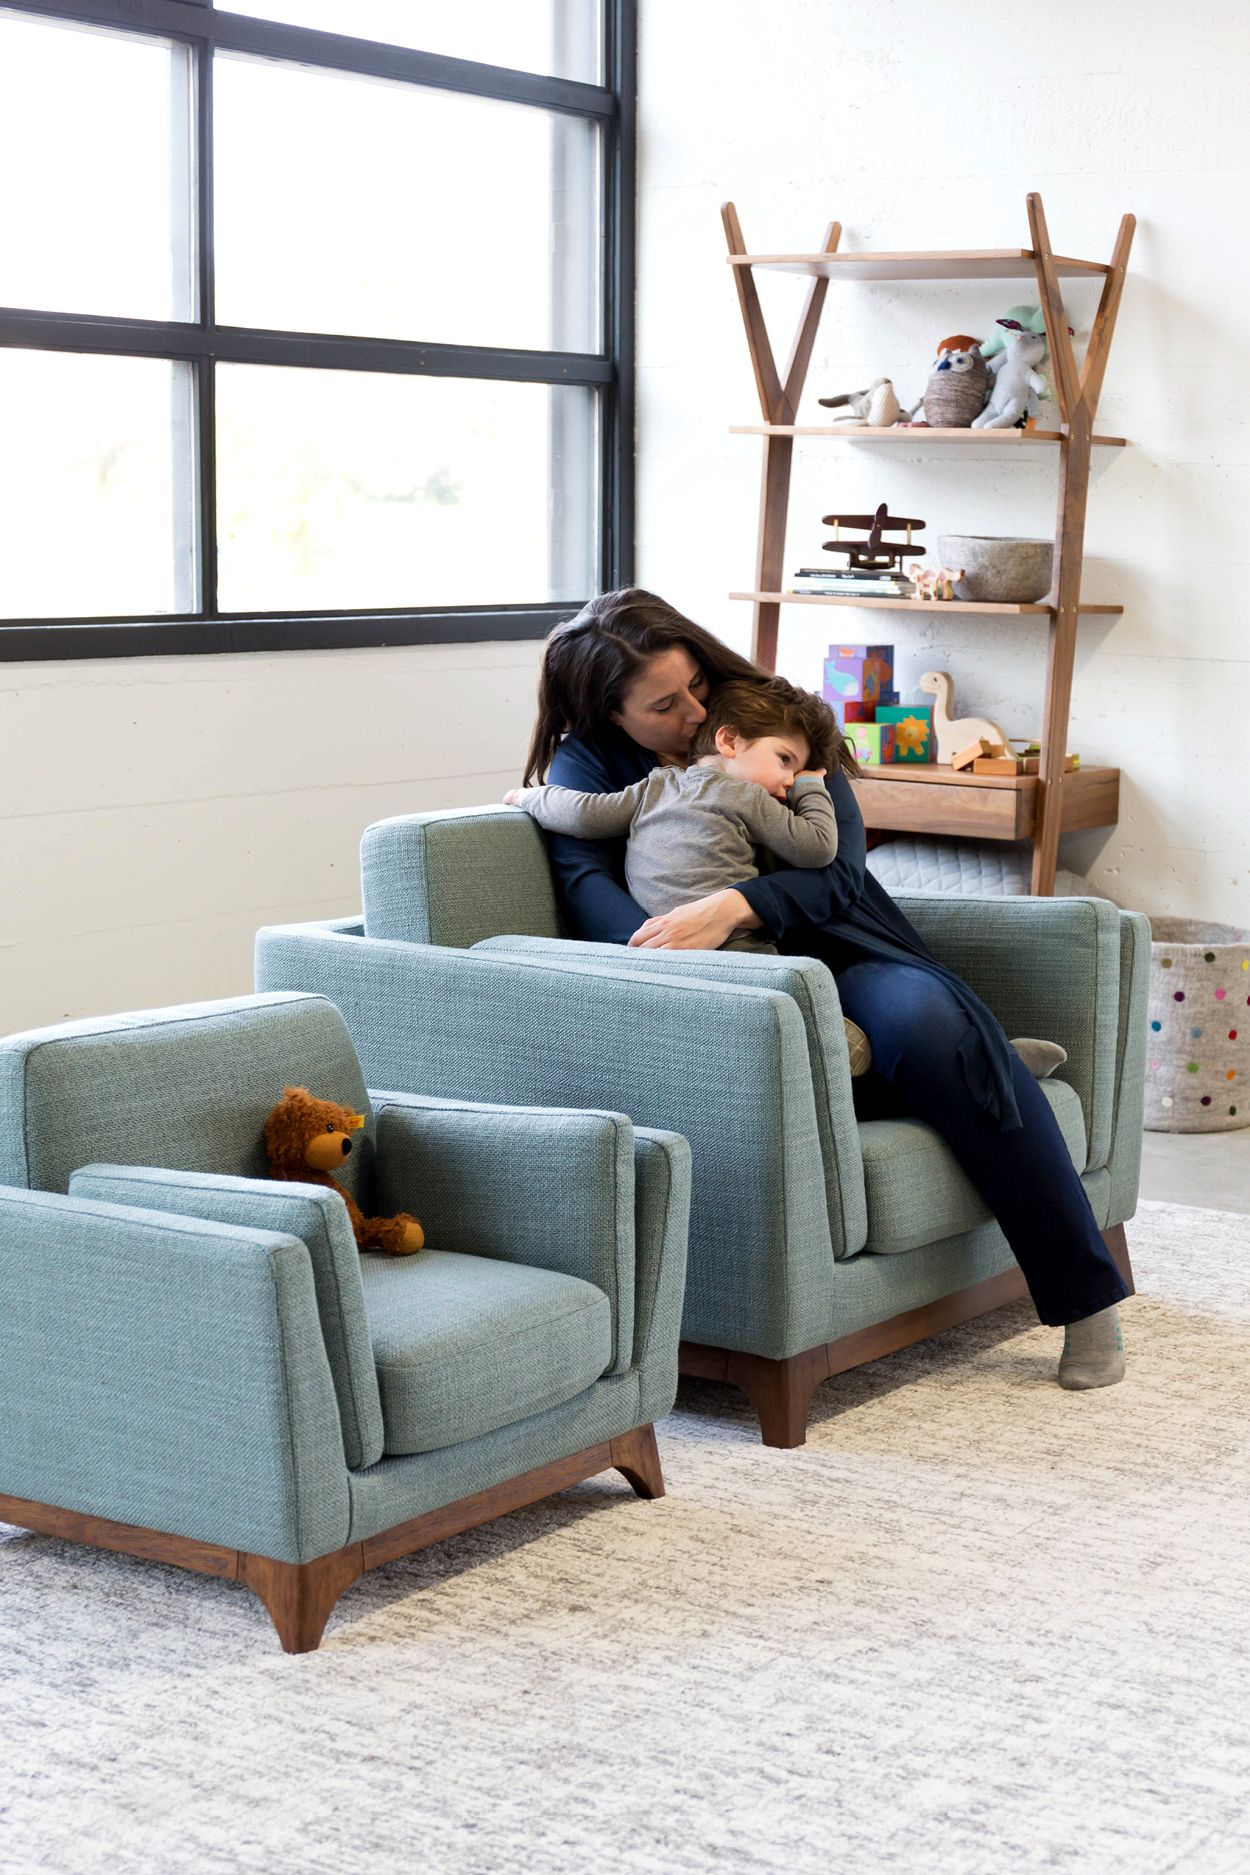 Swell Kid Century Modern With Removable Cushion Covers That Make Short Links Chair Design For Home Short Linksinfo